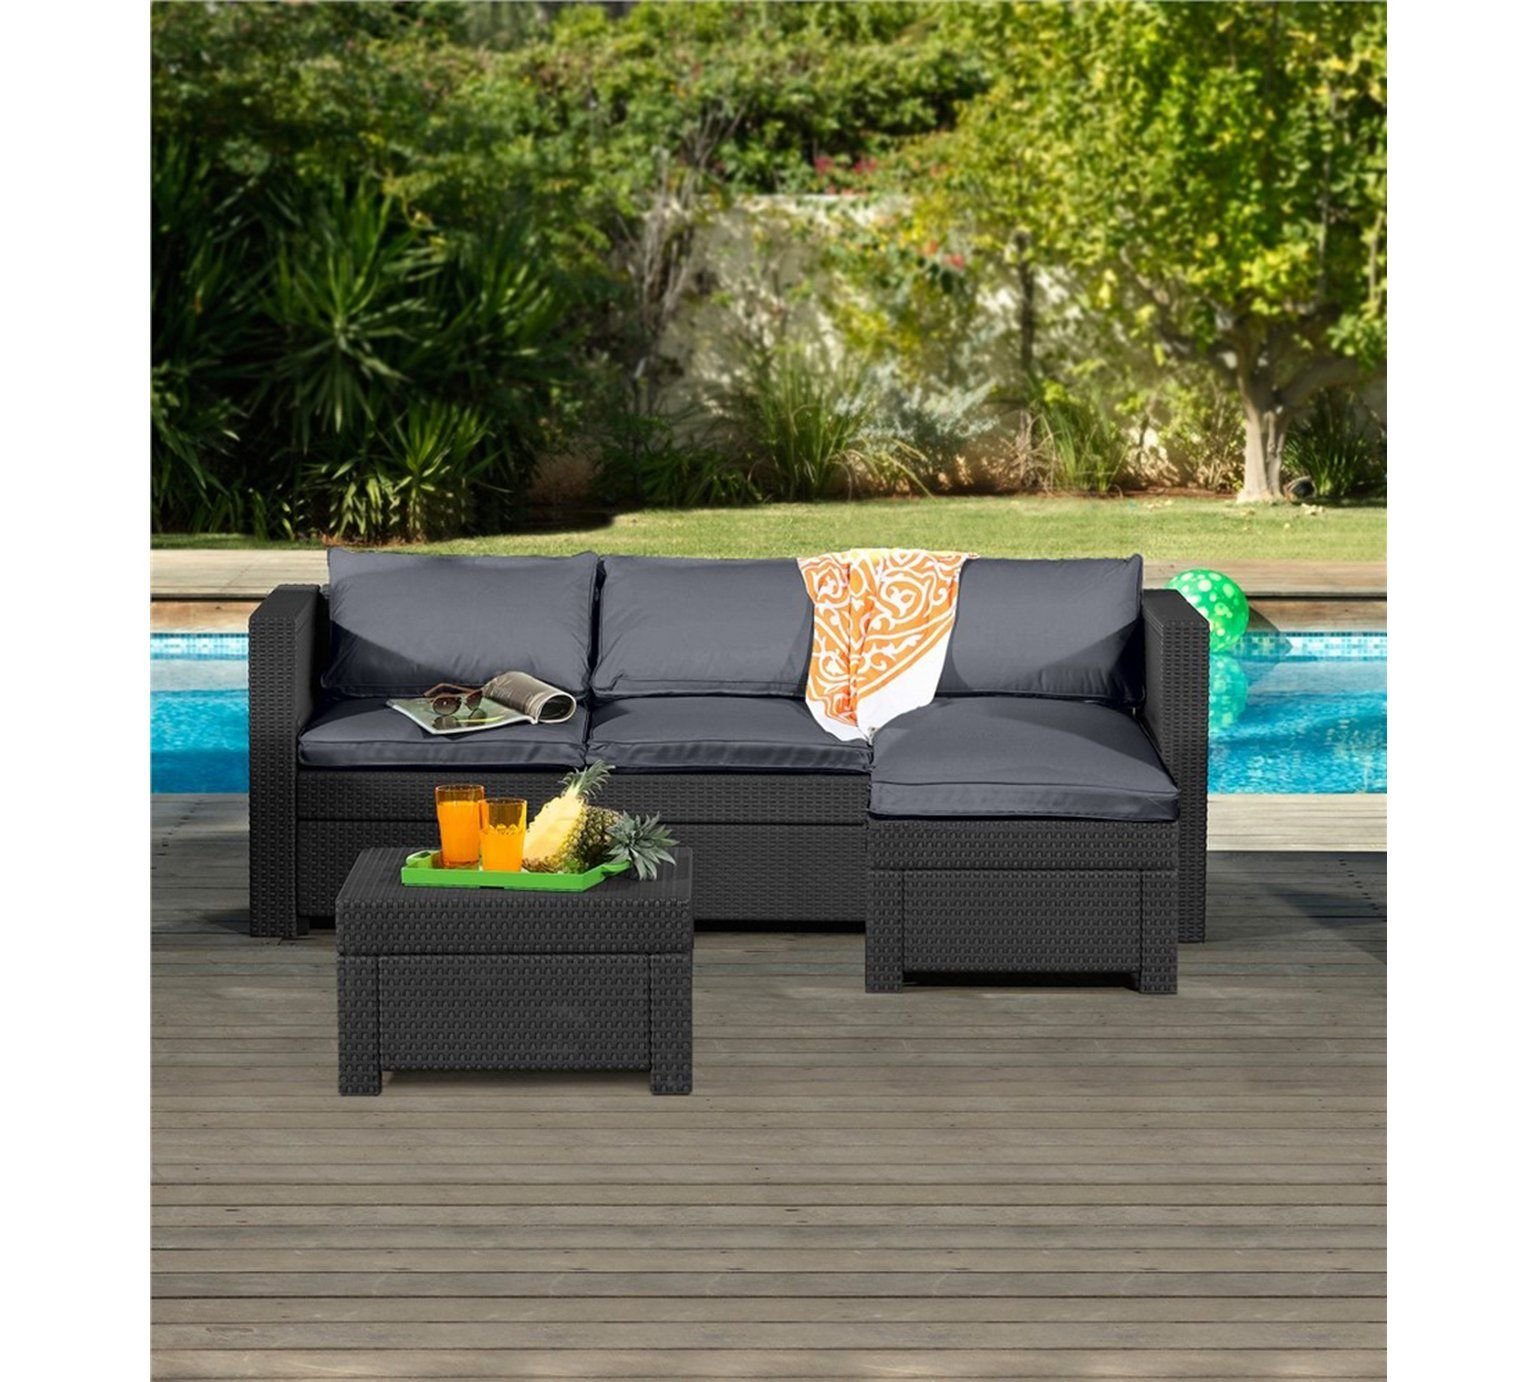 Swell Keter Oxford Rattan Effect Outdoor Corner Sofa Graphite Home Interior And Landscaping Synyenasavecom